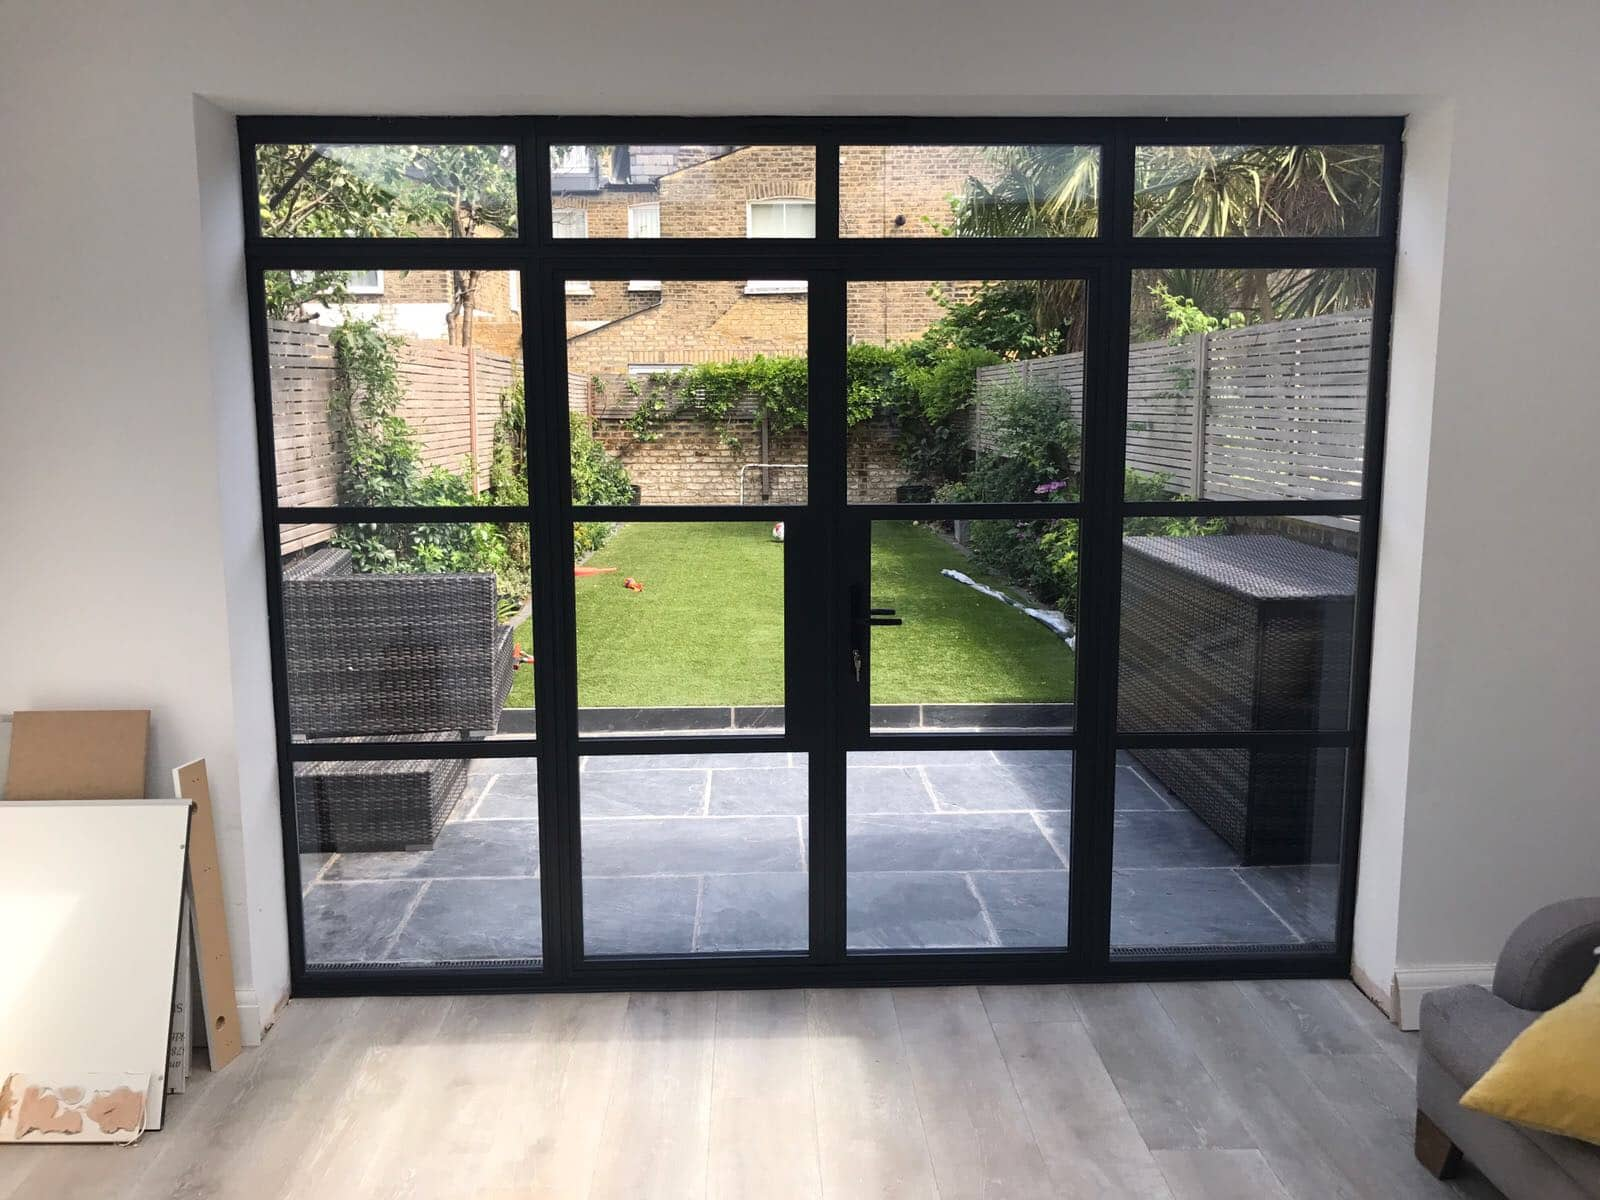 Information About Replacing Crittall Windows With